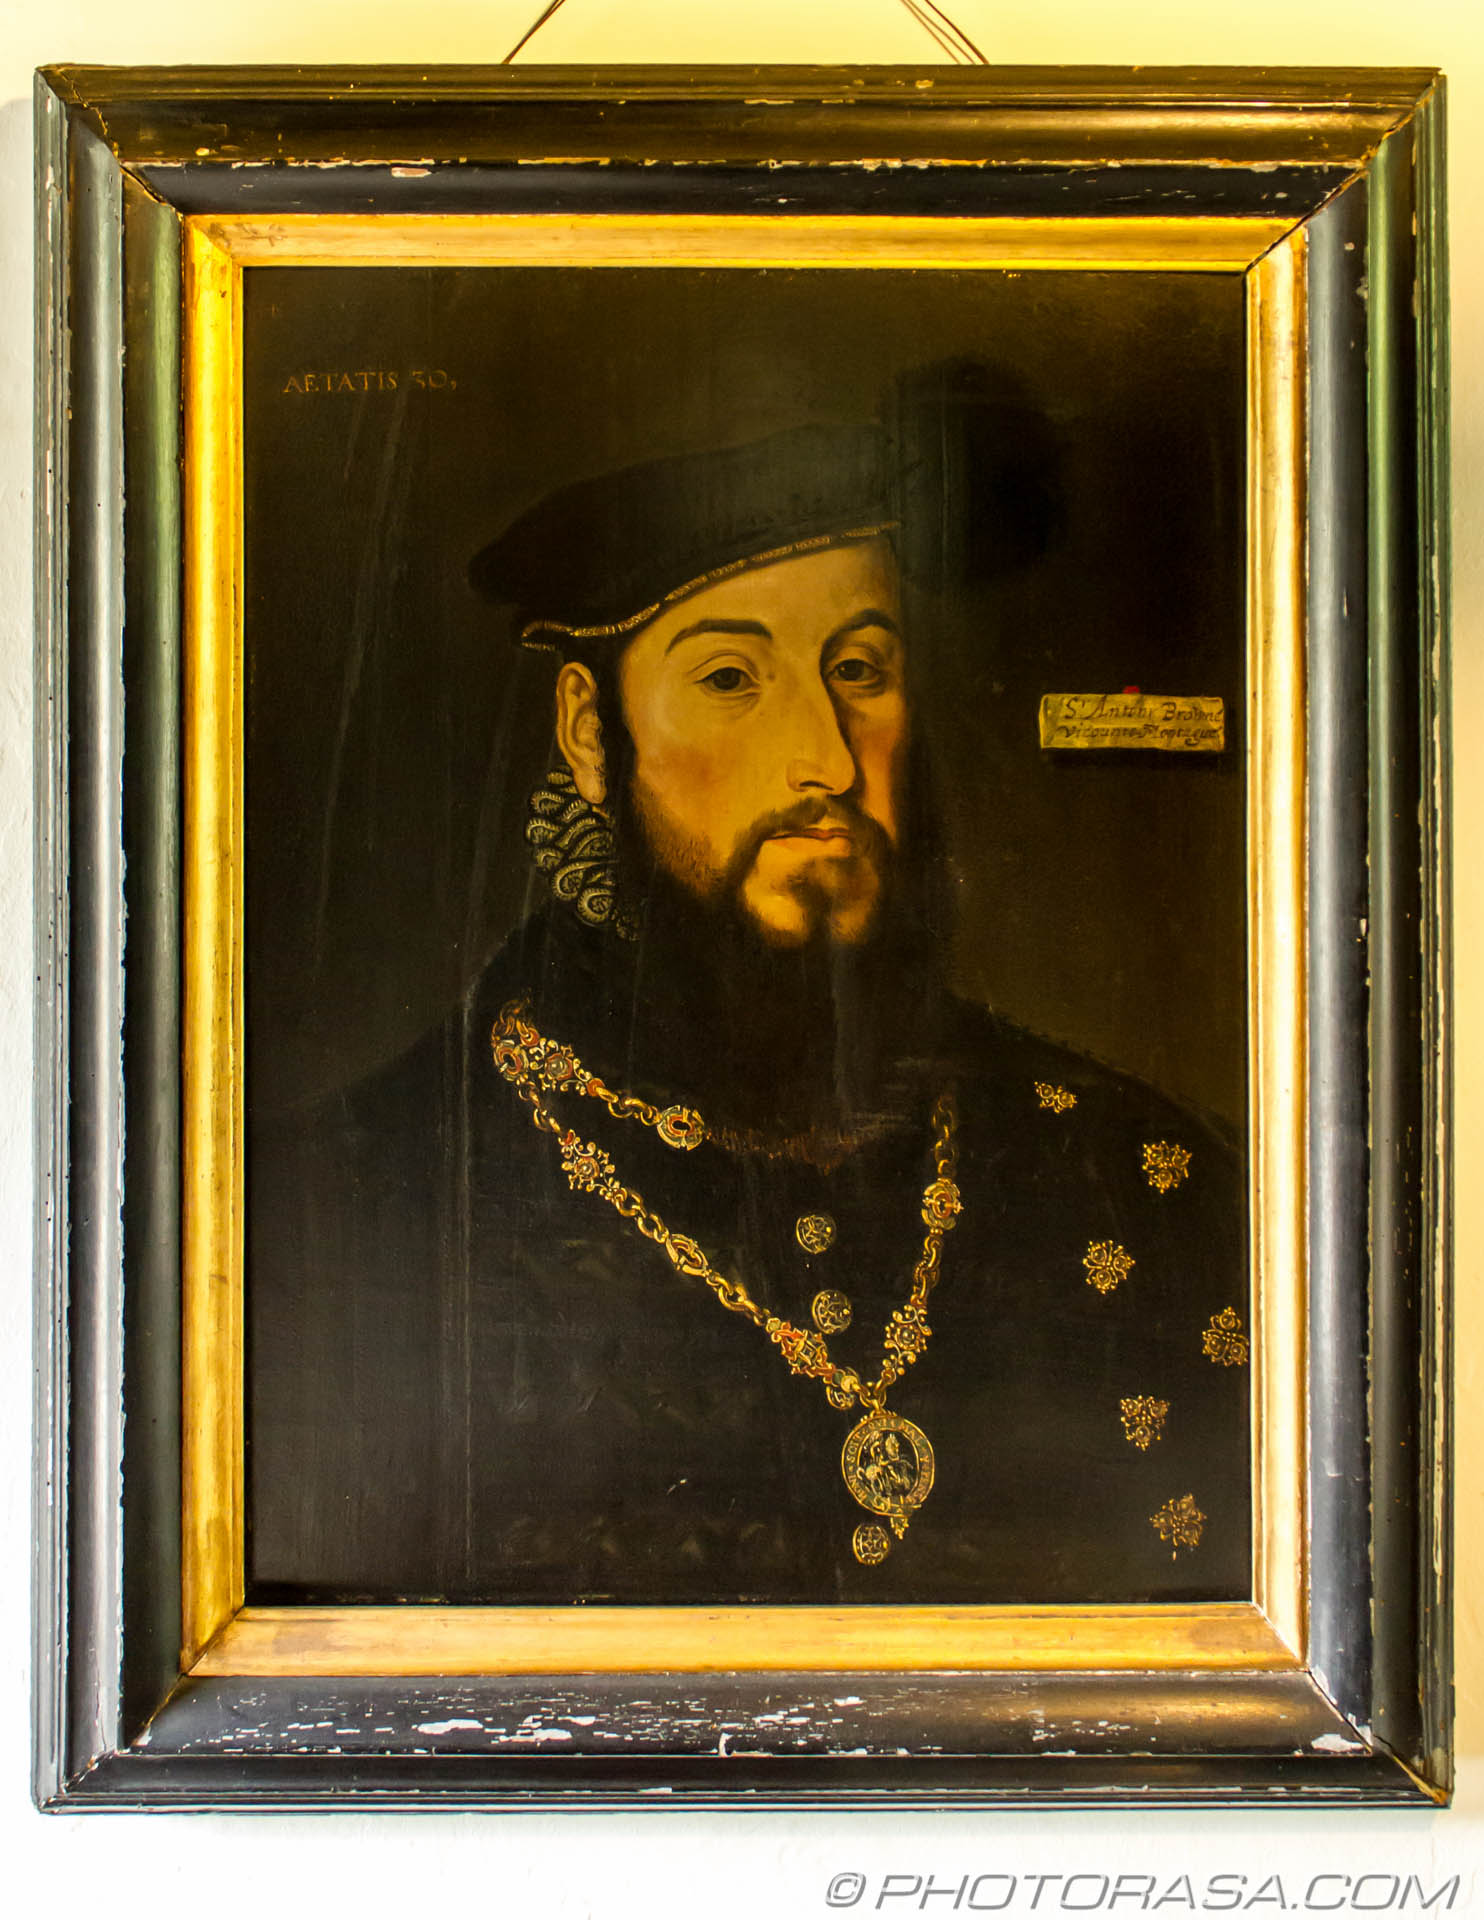 https://photorasa.com/stoneacre-house-paintings/tudor-painting-of-anthony-browne-1st-viscount-montague/